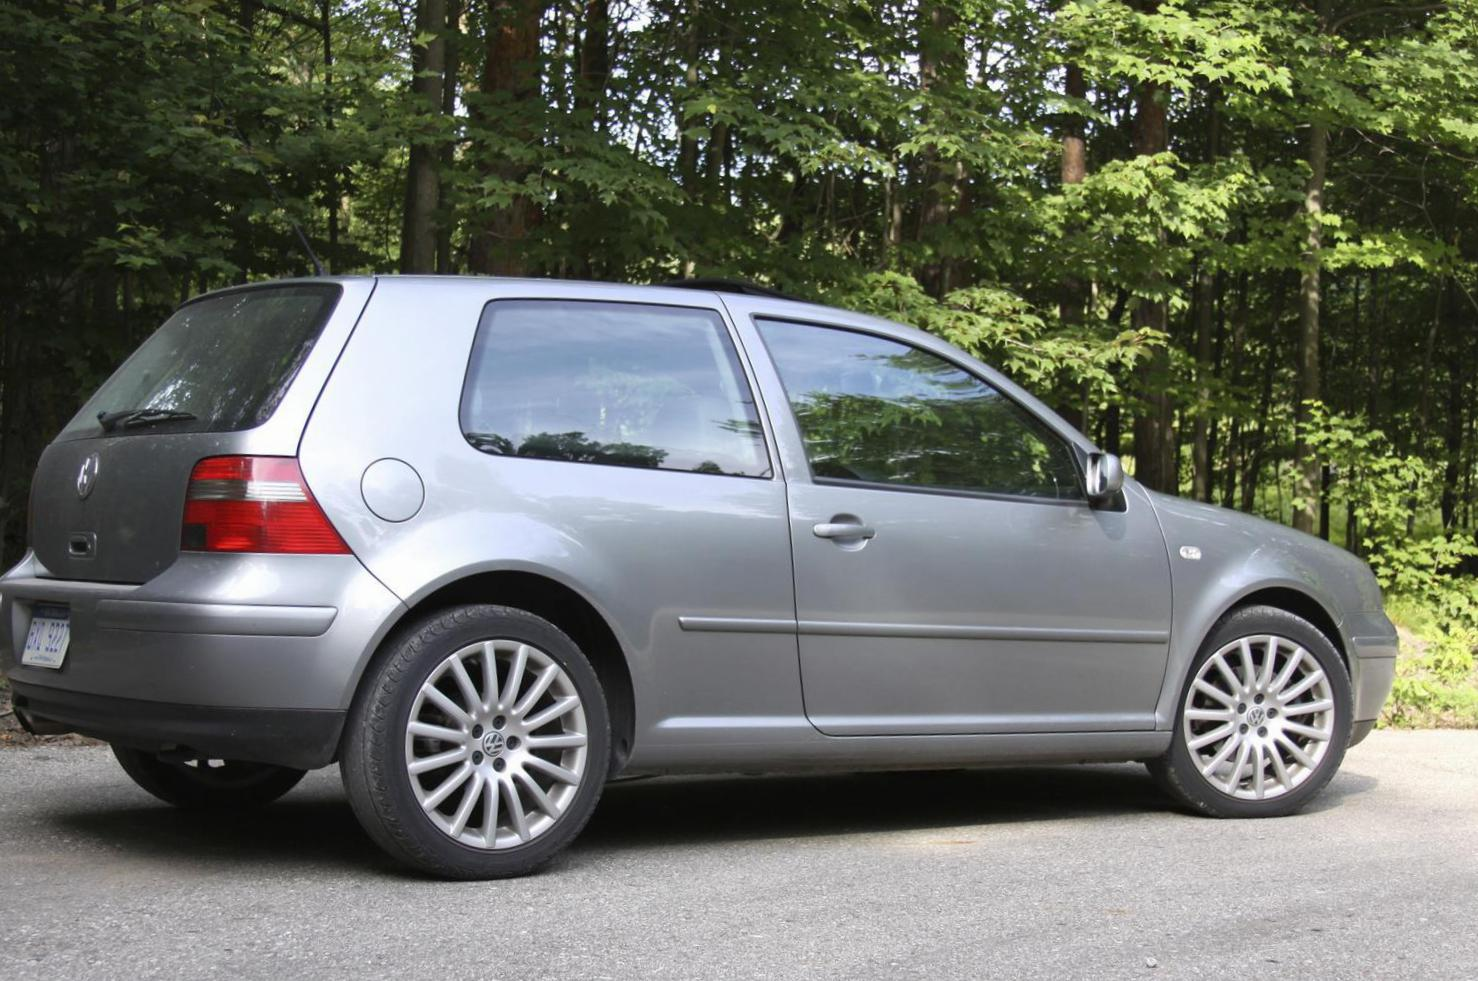 Golf GTI Volkswagen models hatchback